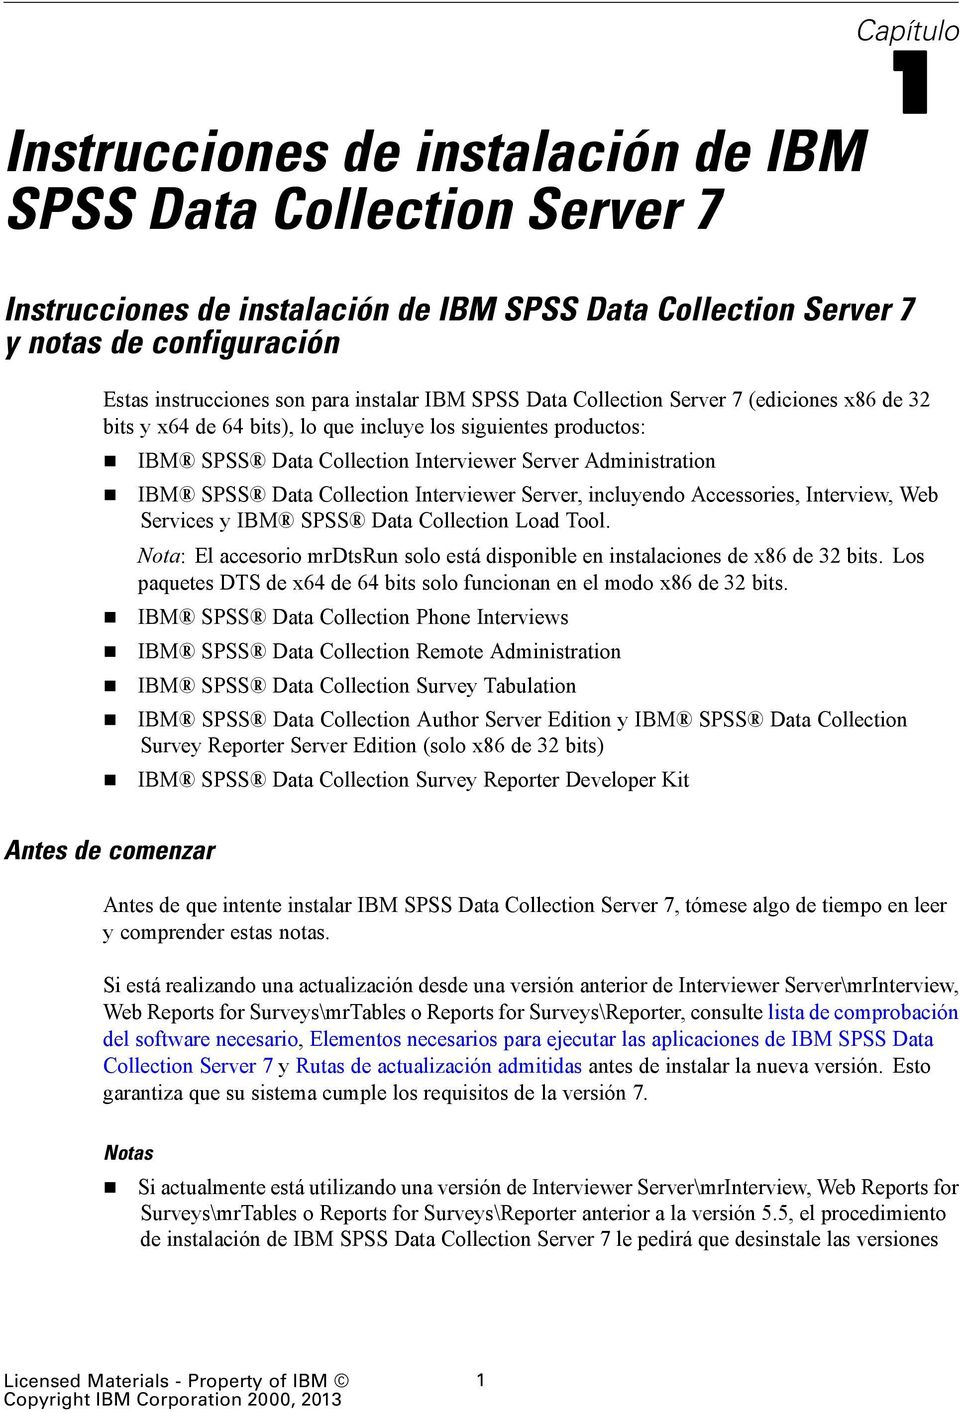 Data Collection Interviewer Server, incluyendo Accessories, Interview, Web Services y IBM SPSS Data Collection Load Tool.